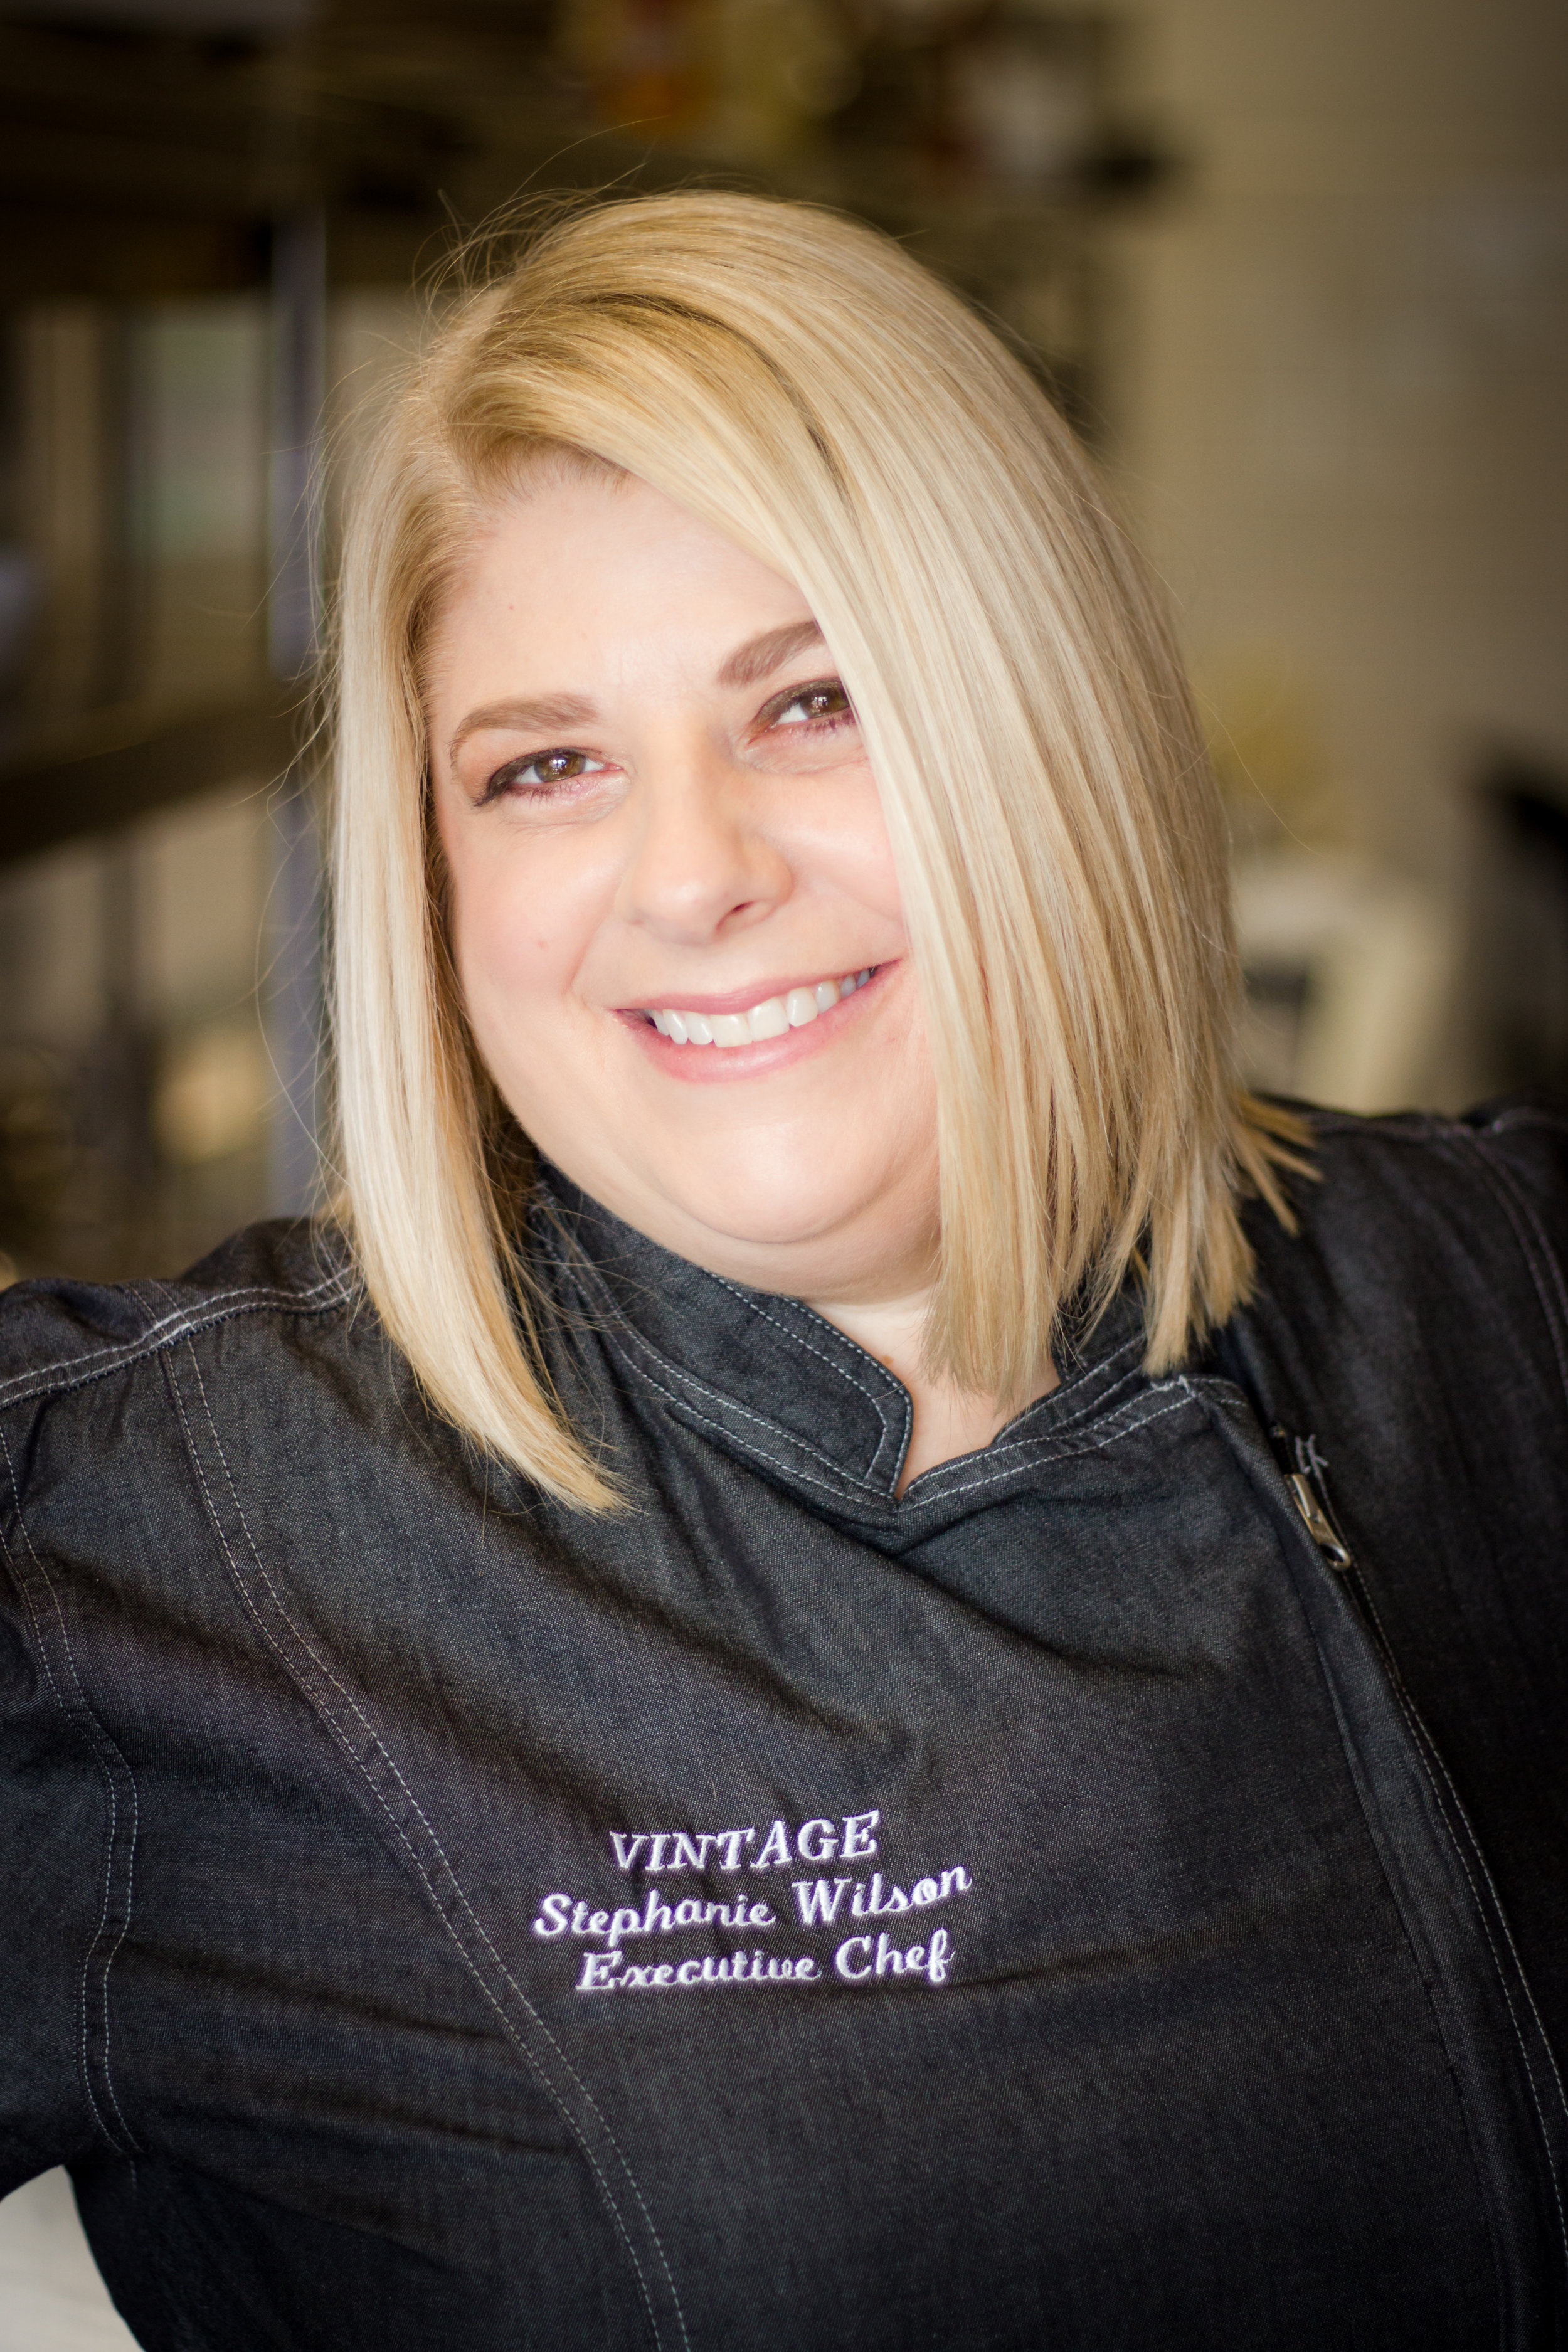 Executive Chef Stephanie WILSONComing from a background of education:She has a B.A. in Anthropology from the University of Maryland, as well as extended education from L'Aaemie de Cusine. She has a longimpressive resume. -